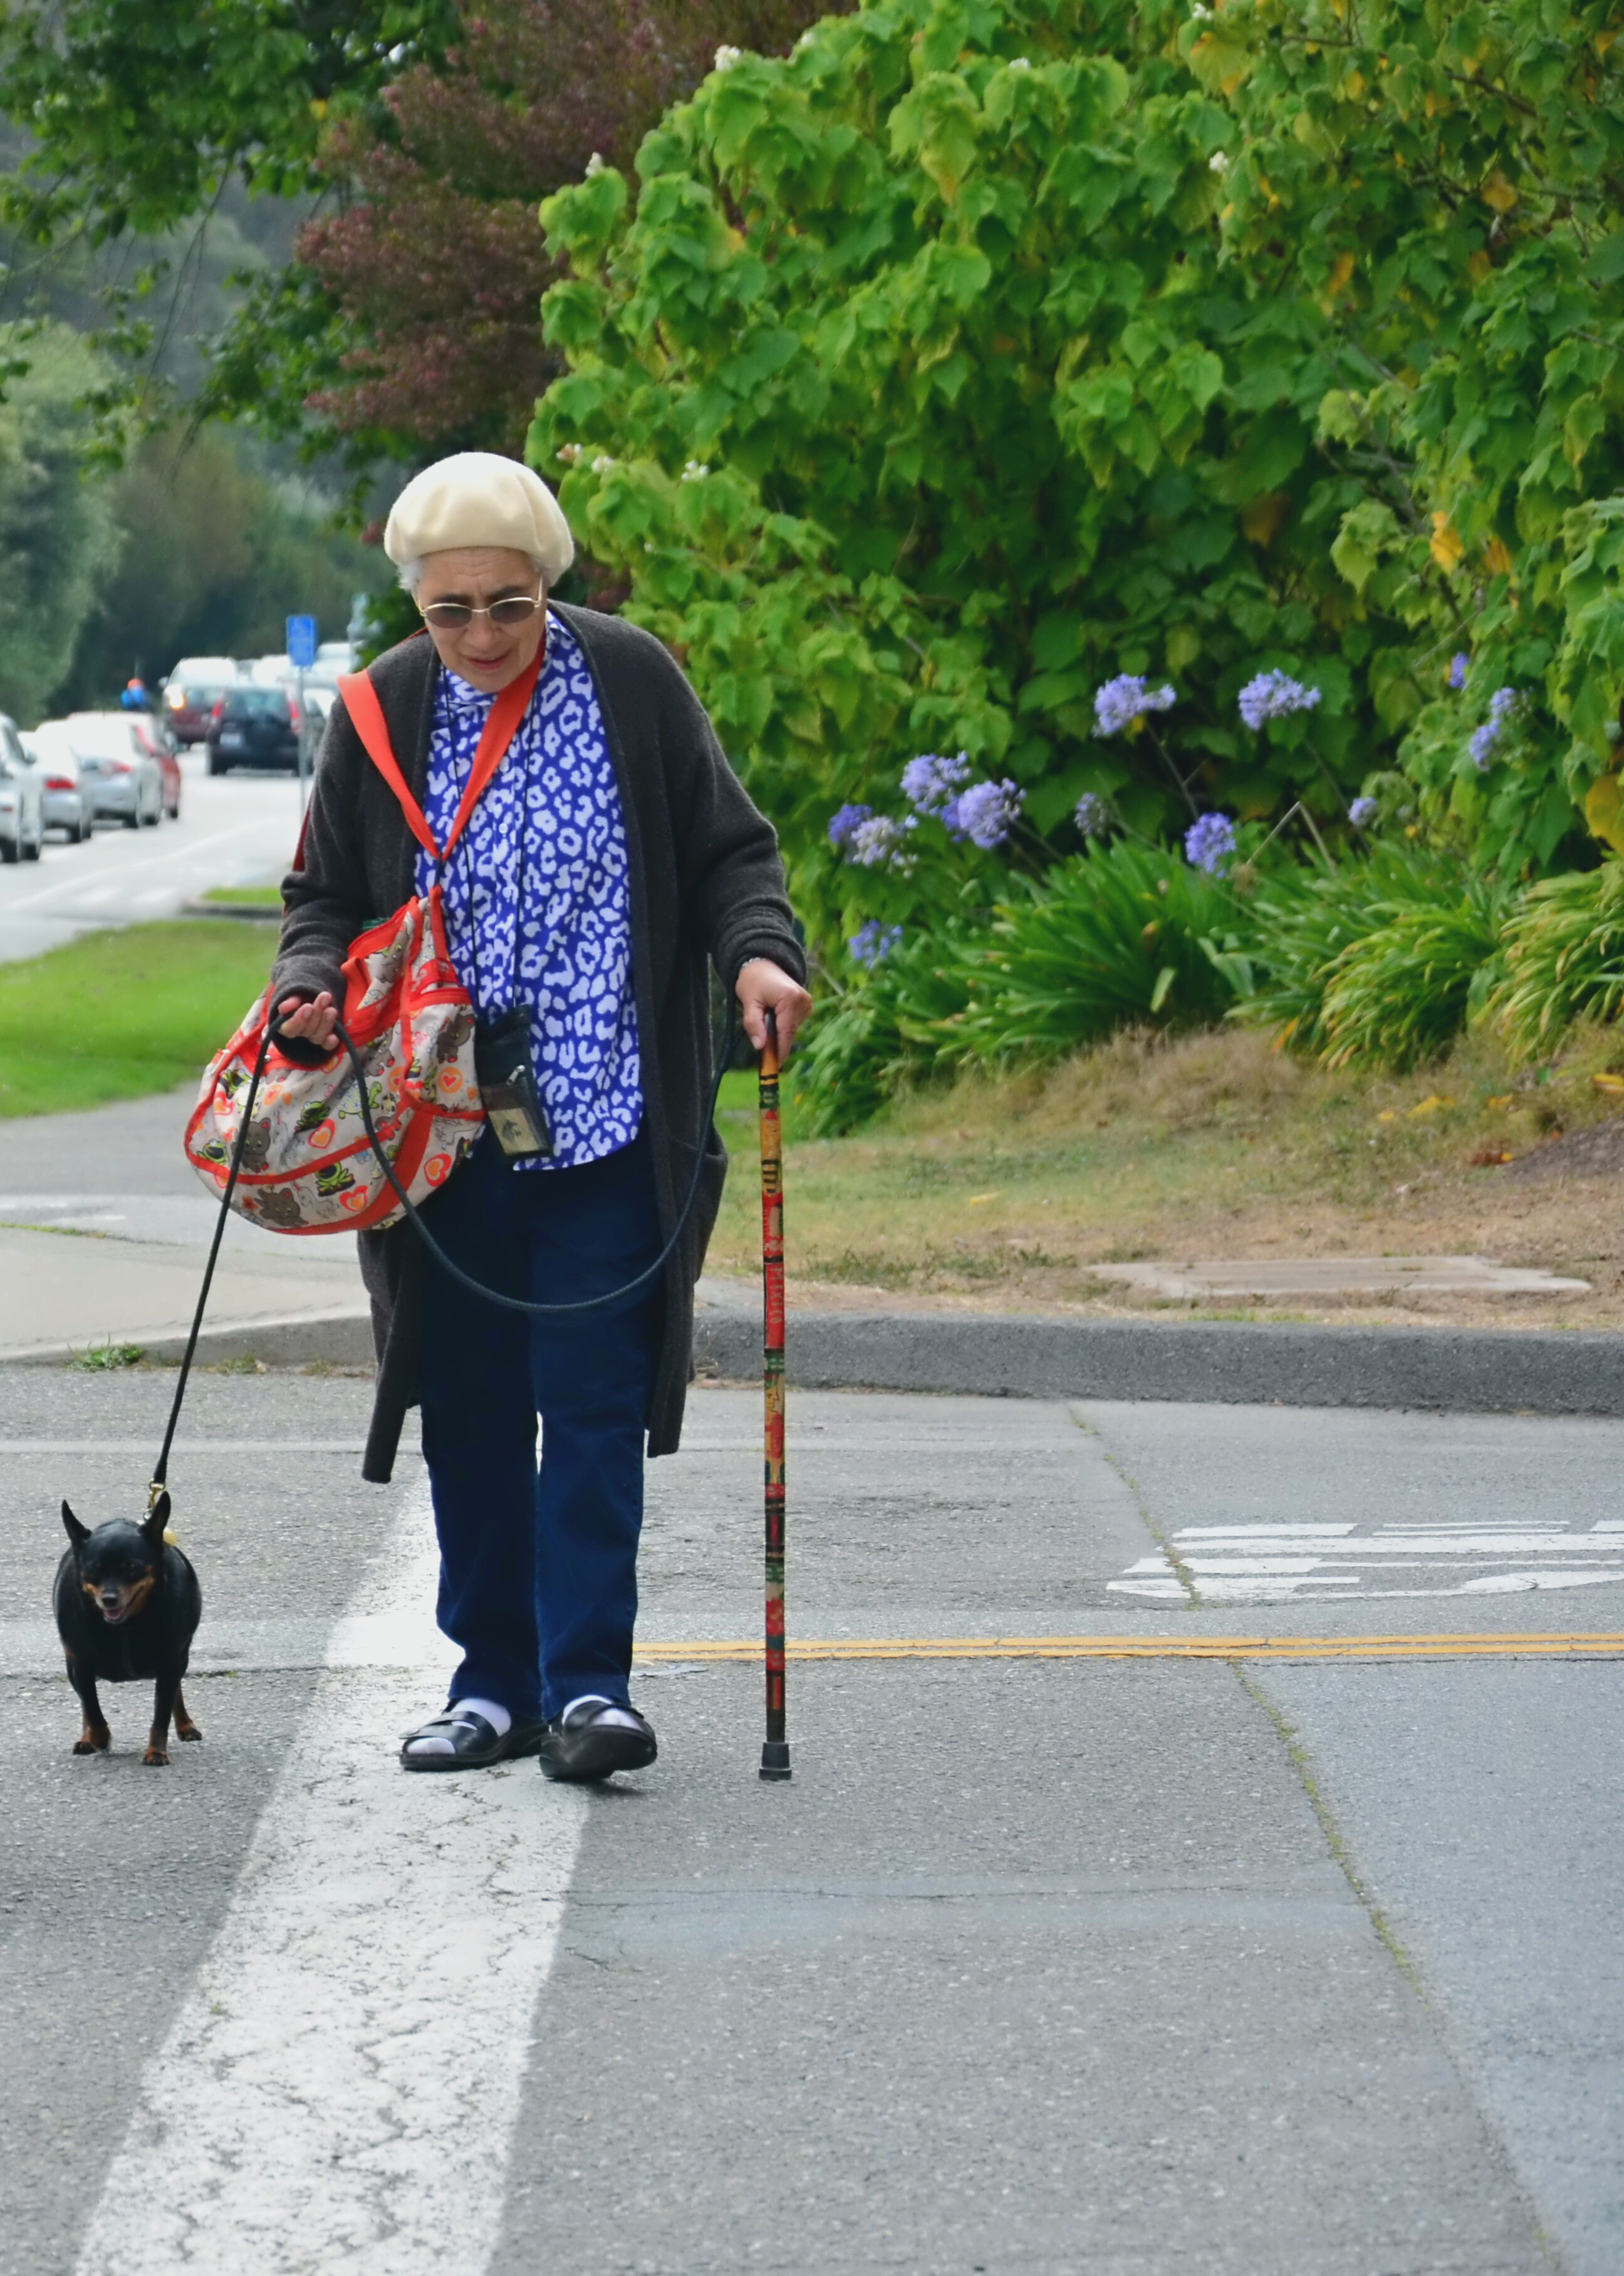 elderly-woman-walking-on-crosswalk-with-cane-and-her-dog